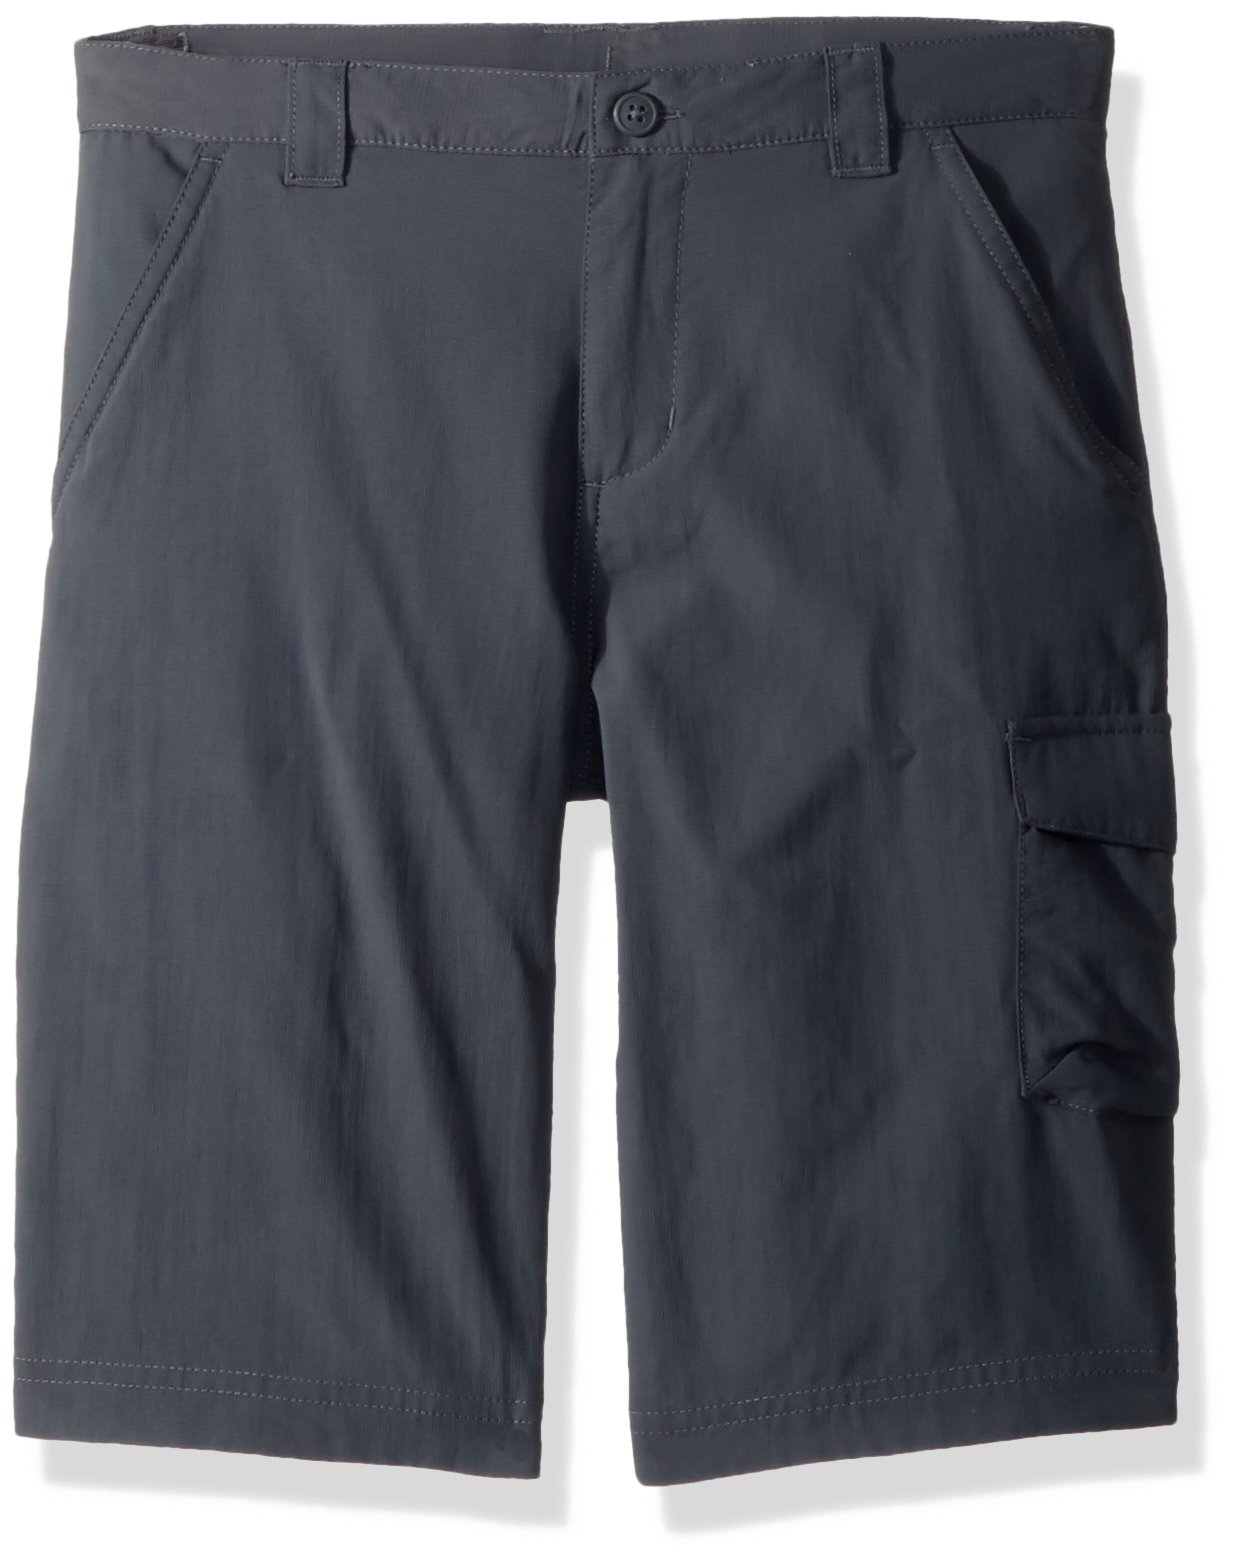 Columbia Youth Boys' Silver Ridge III Short, Breathable, UPF 30 Sun Protection by Columbia